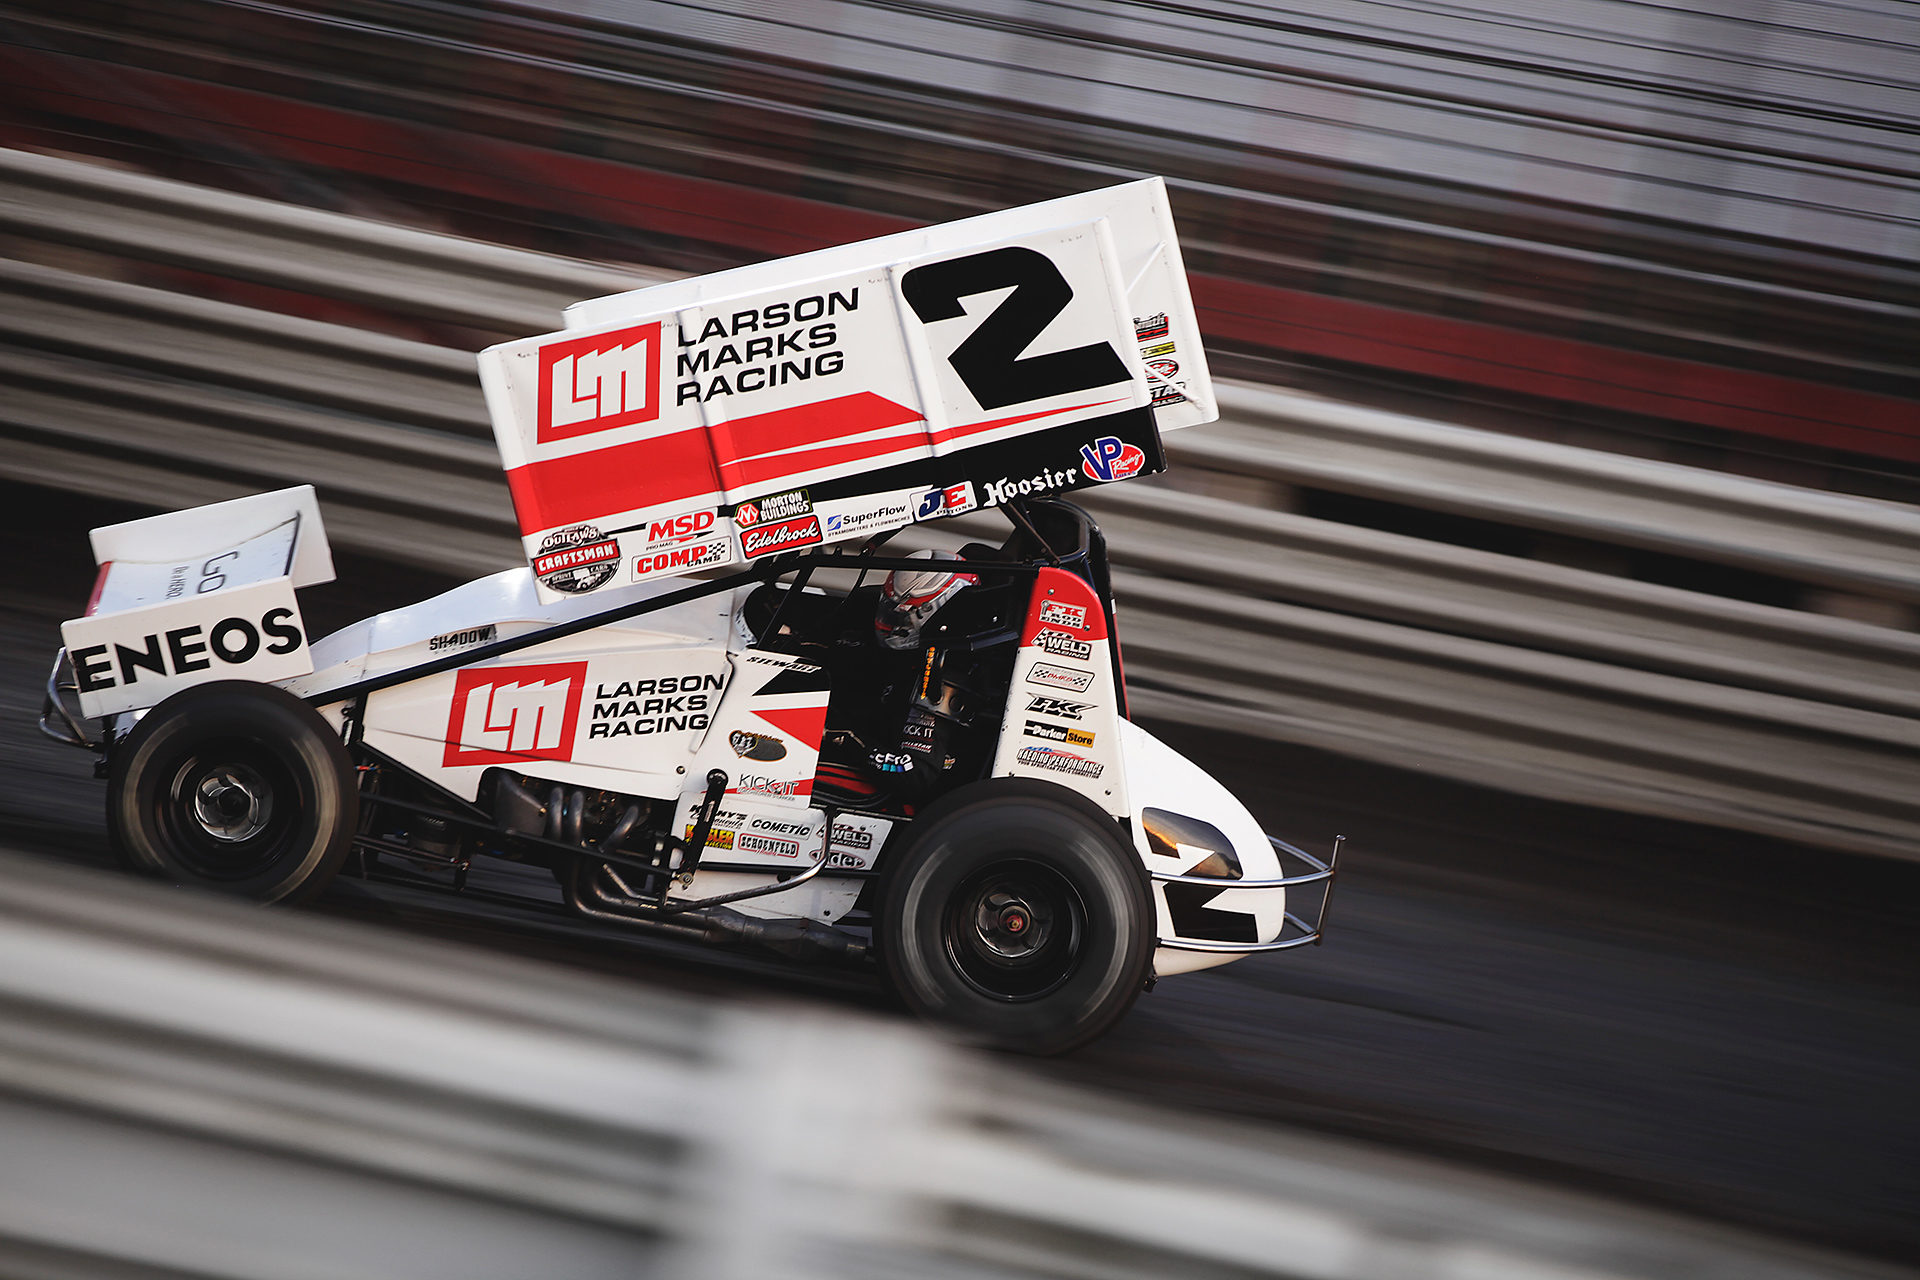 Shane Stewart running his heat on Saturday at Knoxville Raceway. Shane Stewart was fast all weekend in The Larson-Marks 2 and made impressive charges from the back on both nights. ( Jeffrey Turford / TDP )